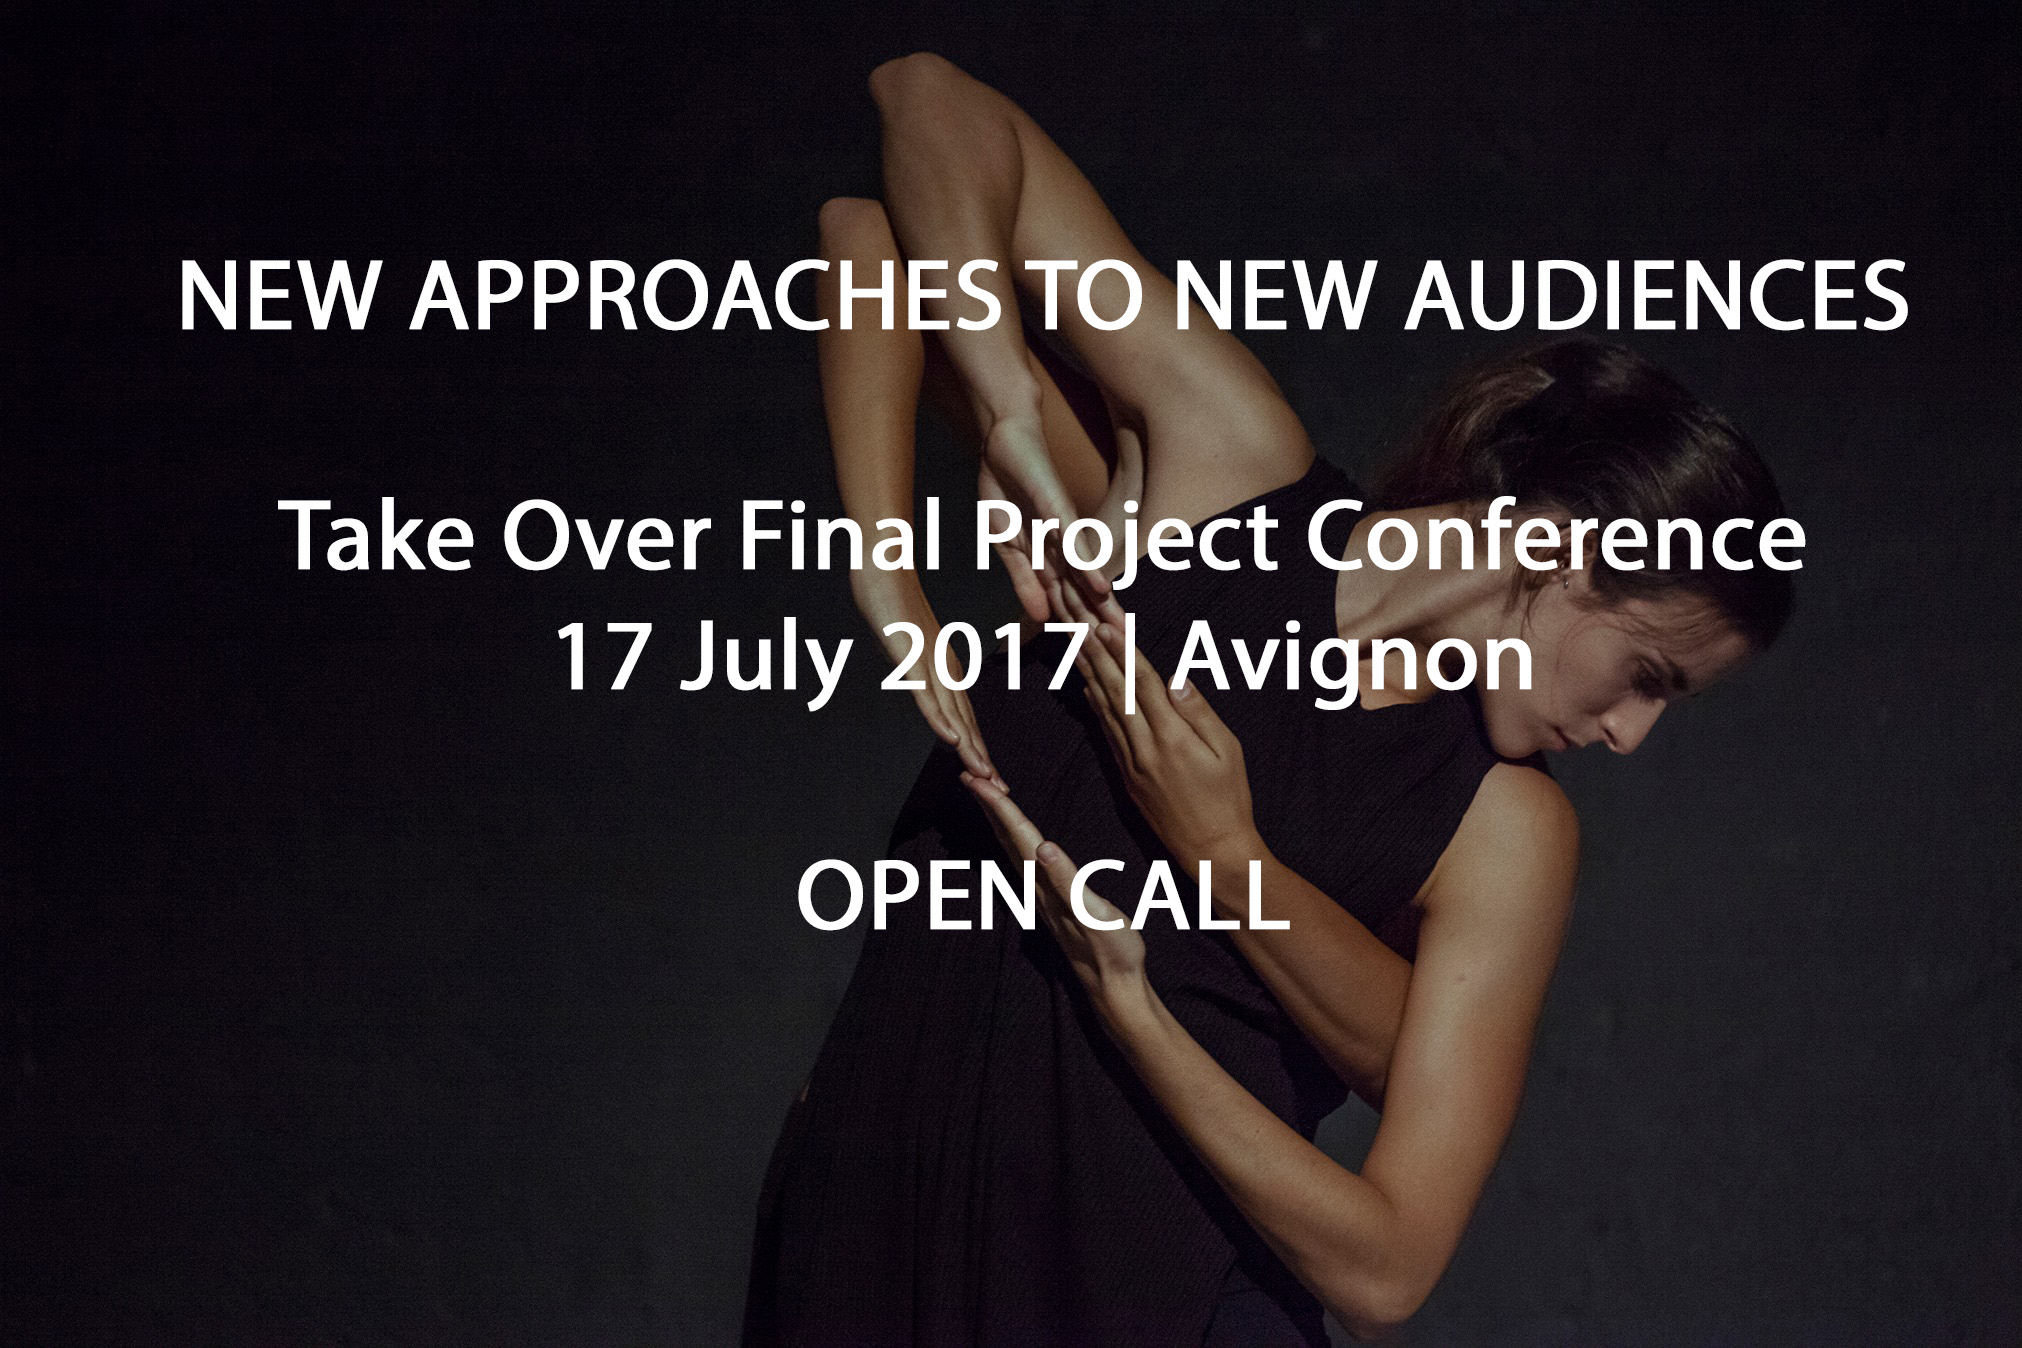 Take Over Final Project Conference - open call